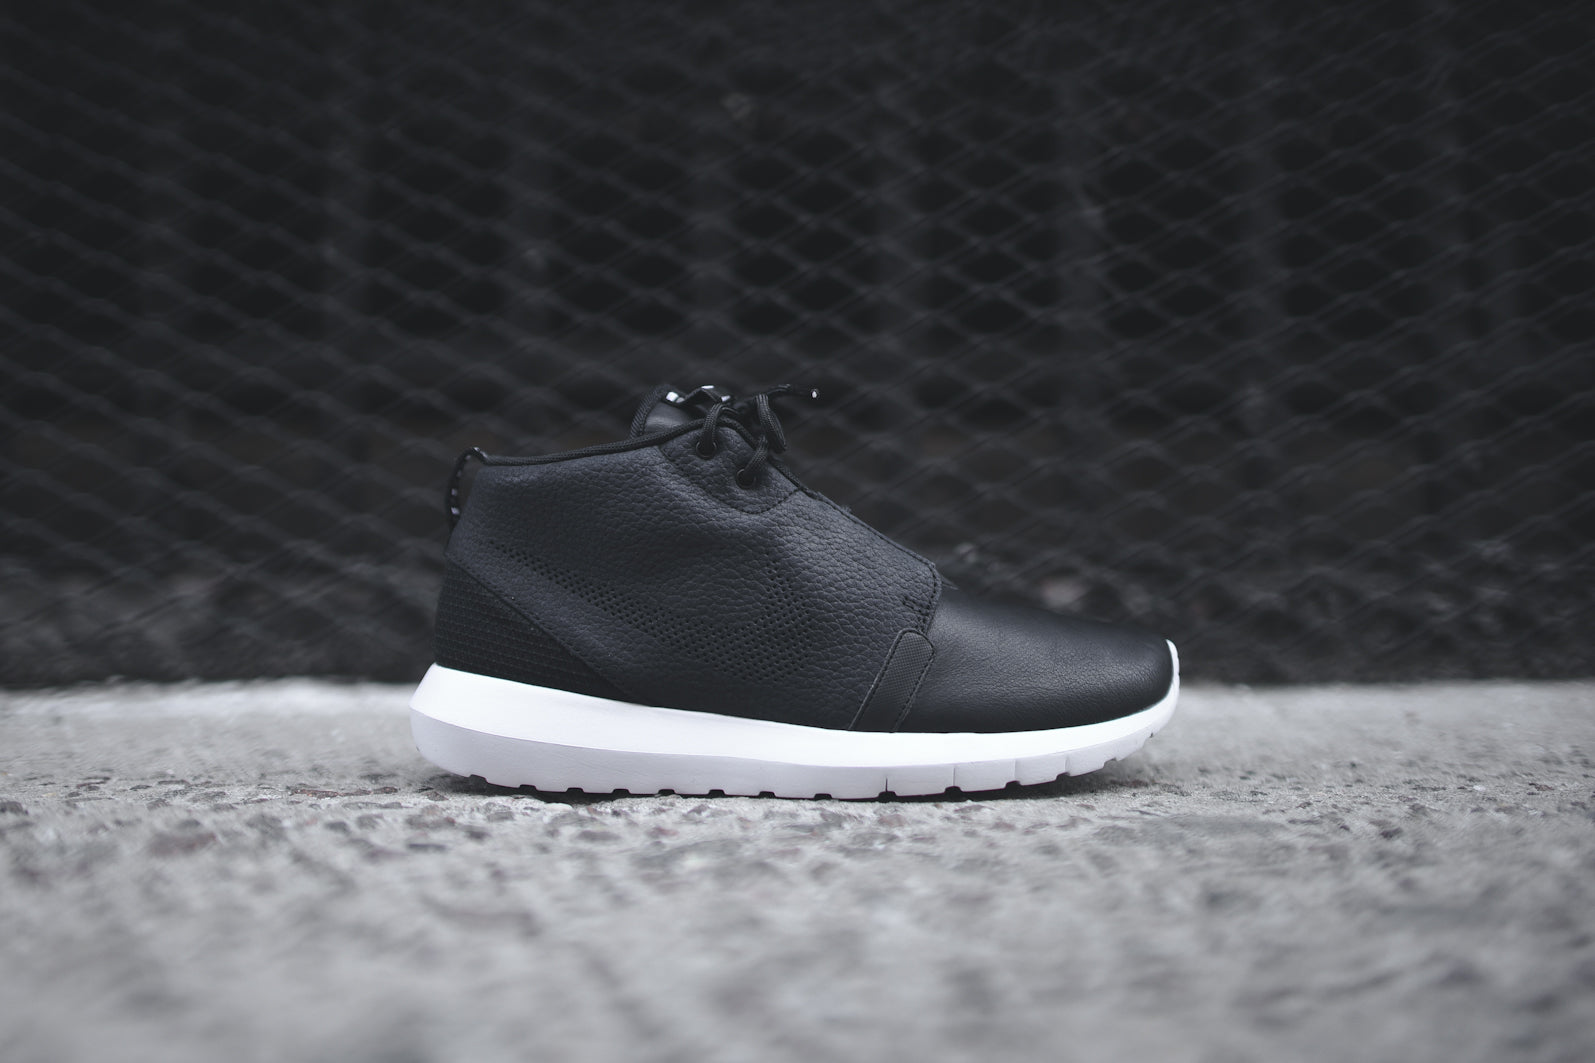 3e13baeb0c1f The NIKE Roshe Run NM Sneakerboot - Black   Dark Grey   White is available  now for email order at KITH Manhattan and KITH Brooklyn.